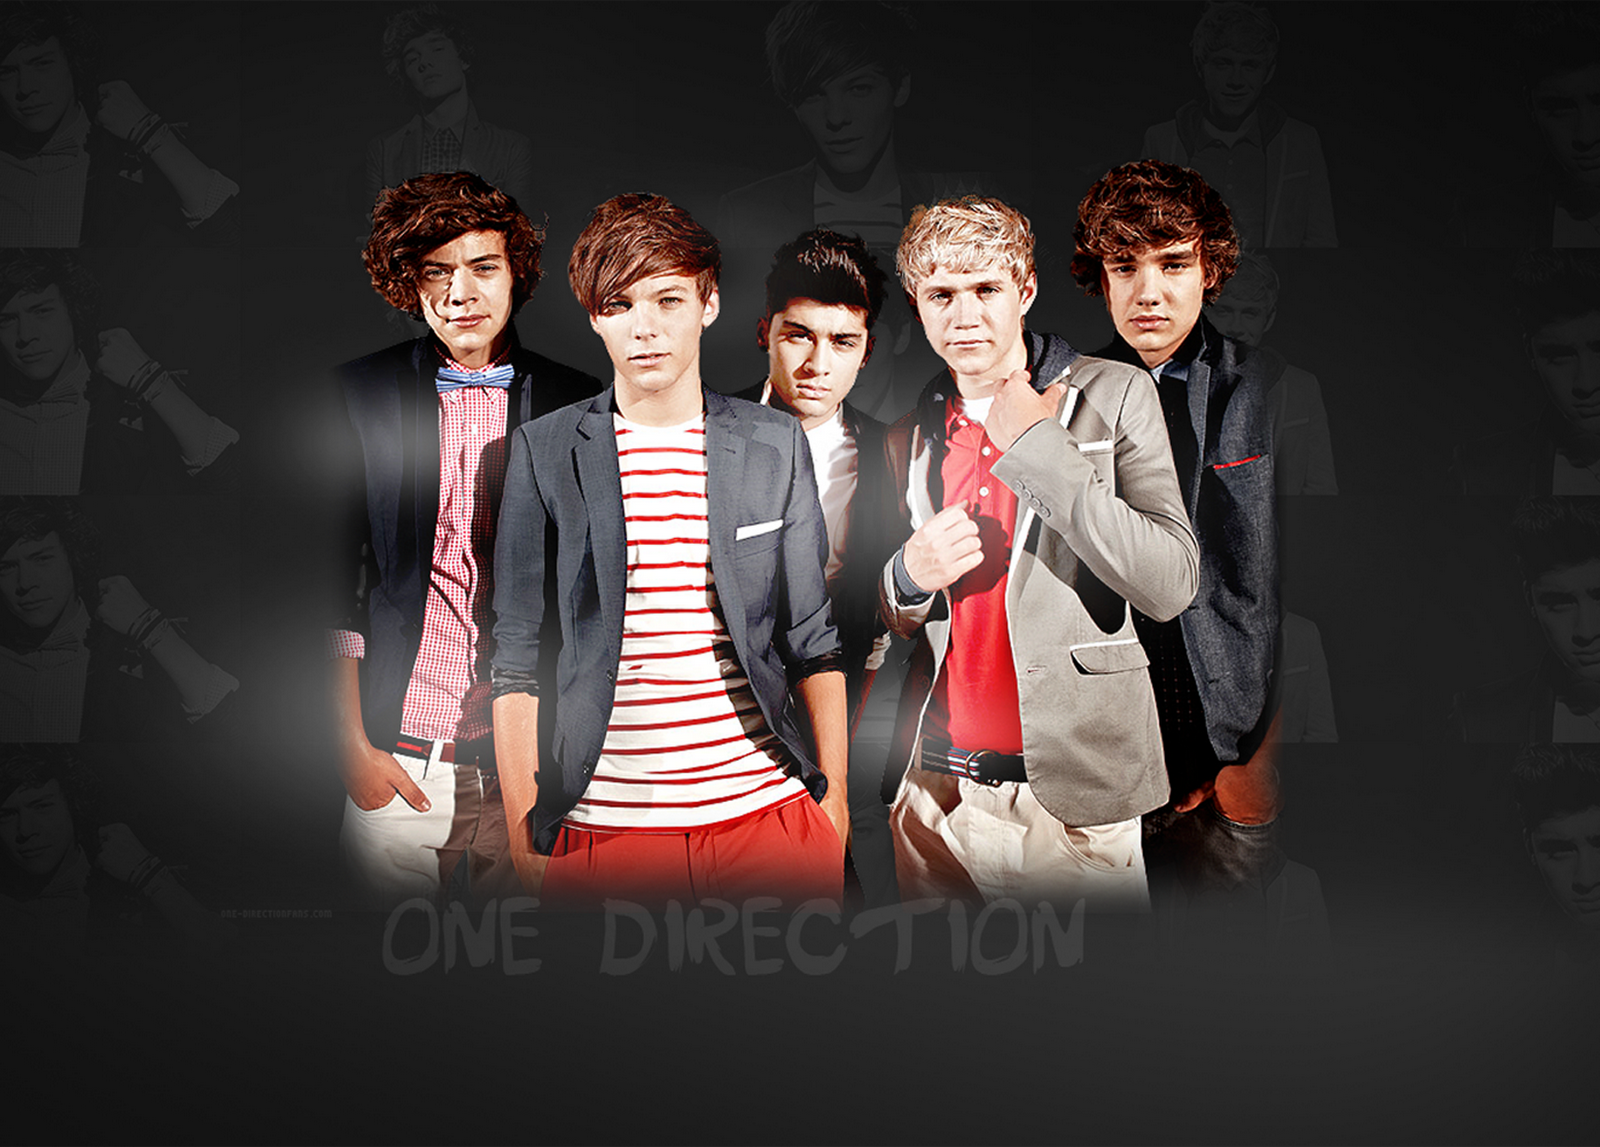 One Direction Wallpaper Iphone - One Direction Wallpaper 3d - HD Wallpaper